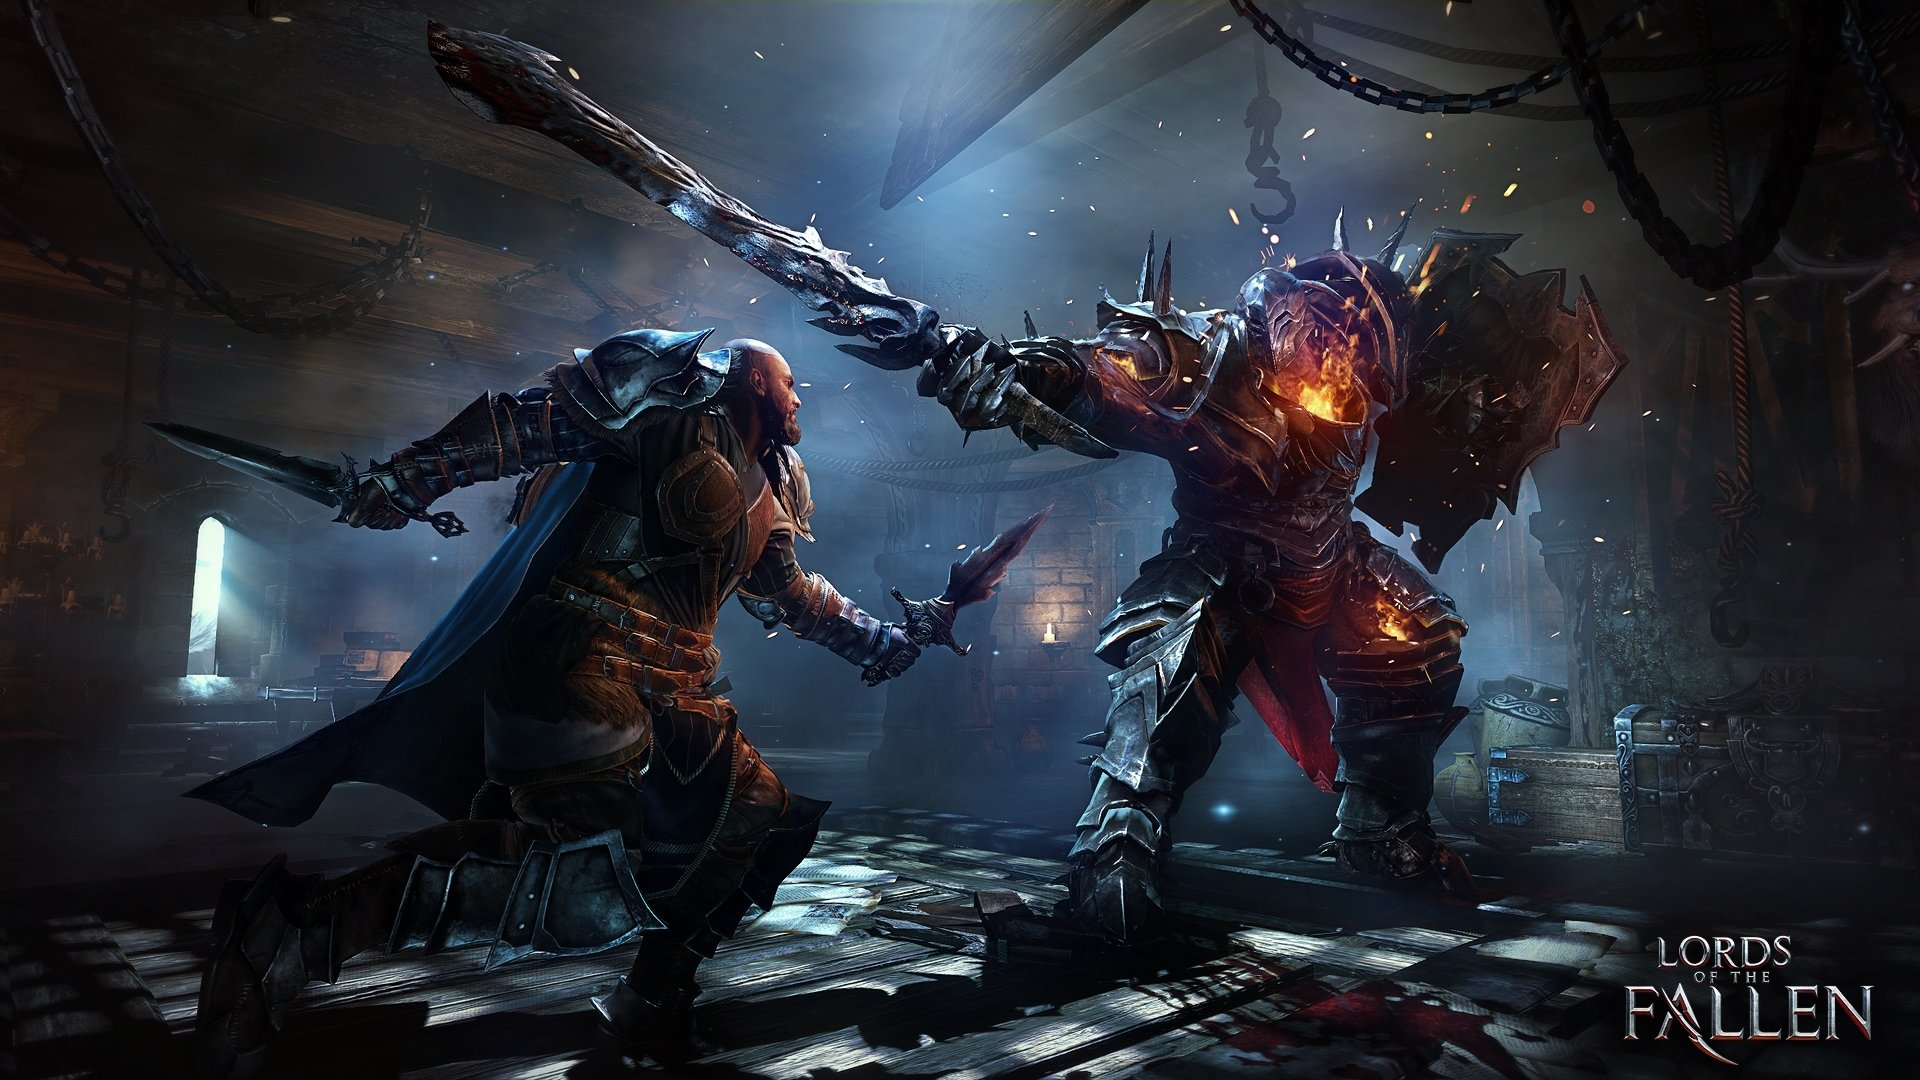 Lord of the Fallen%E2%80%93 two new screenshots 1